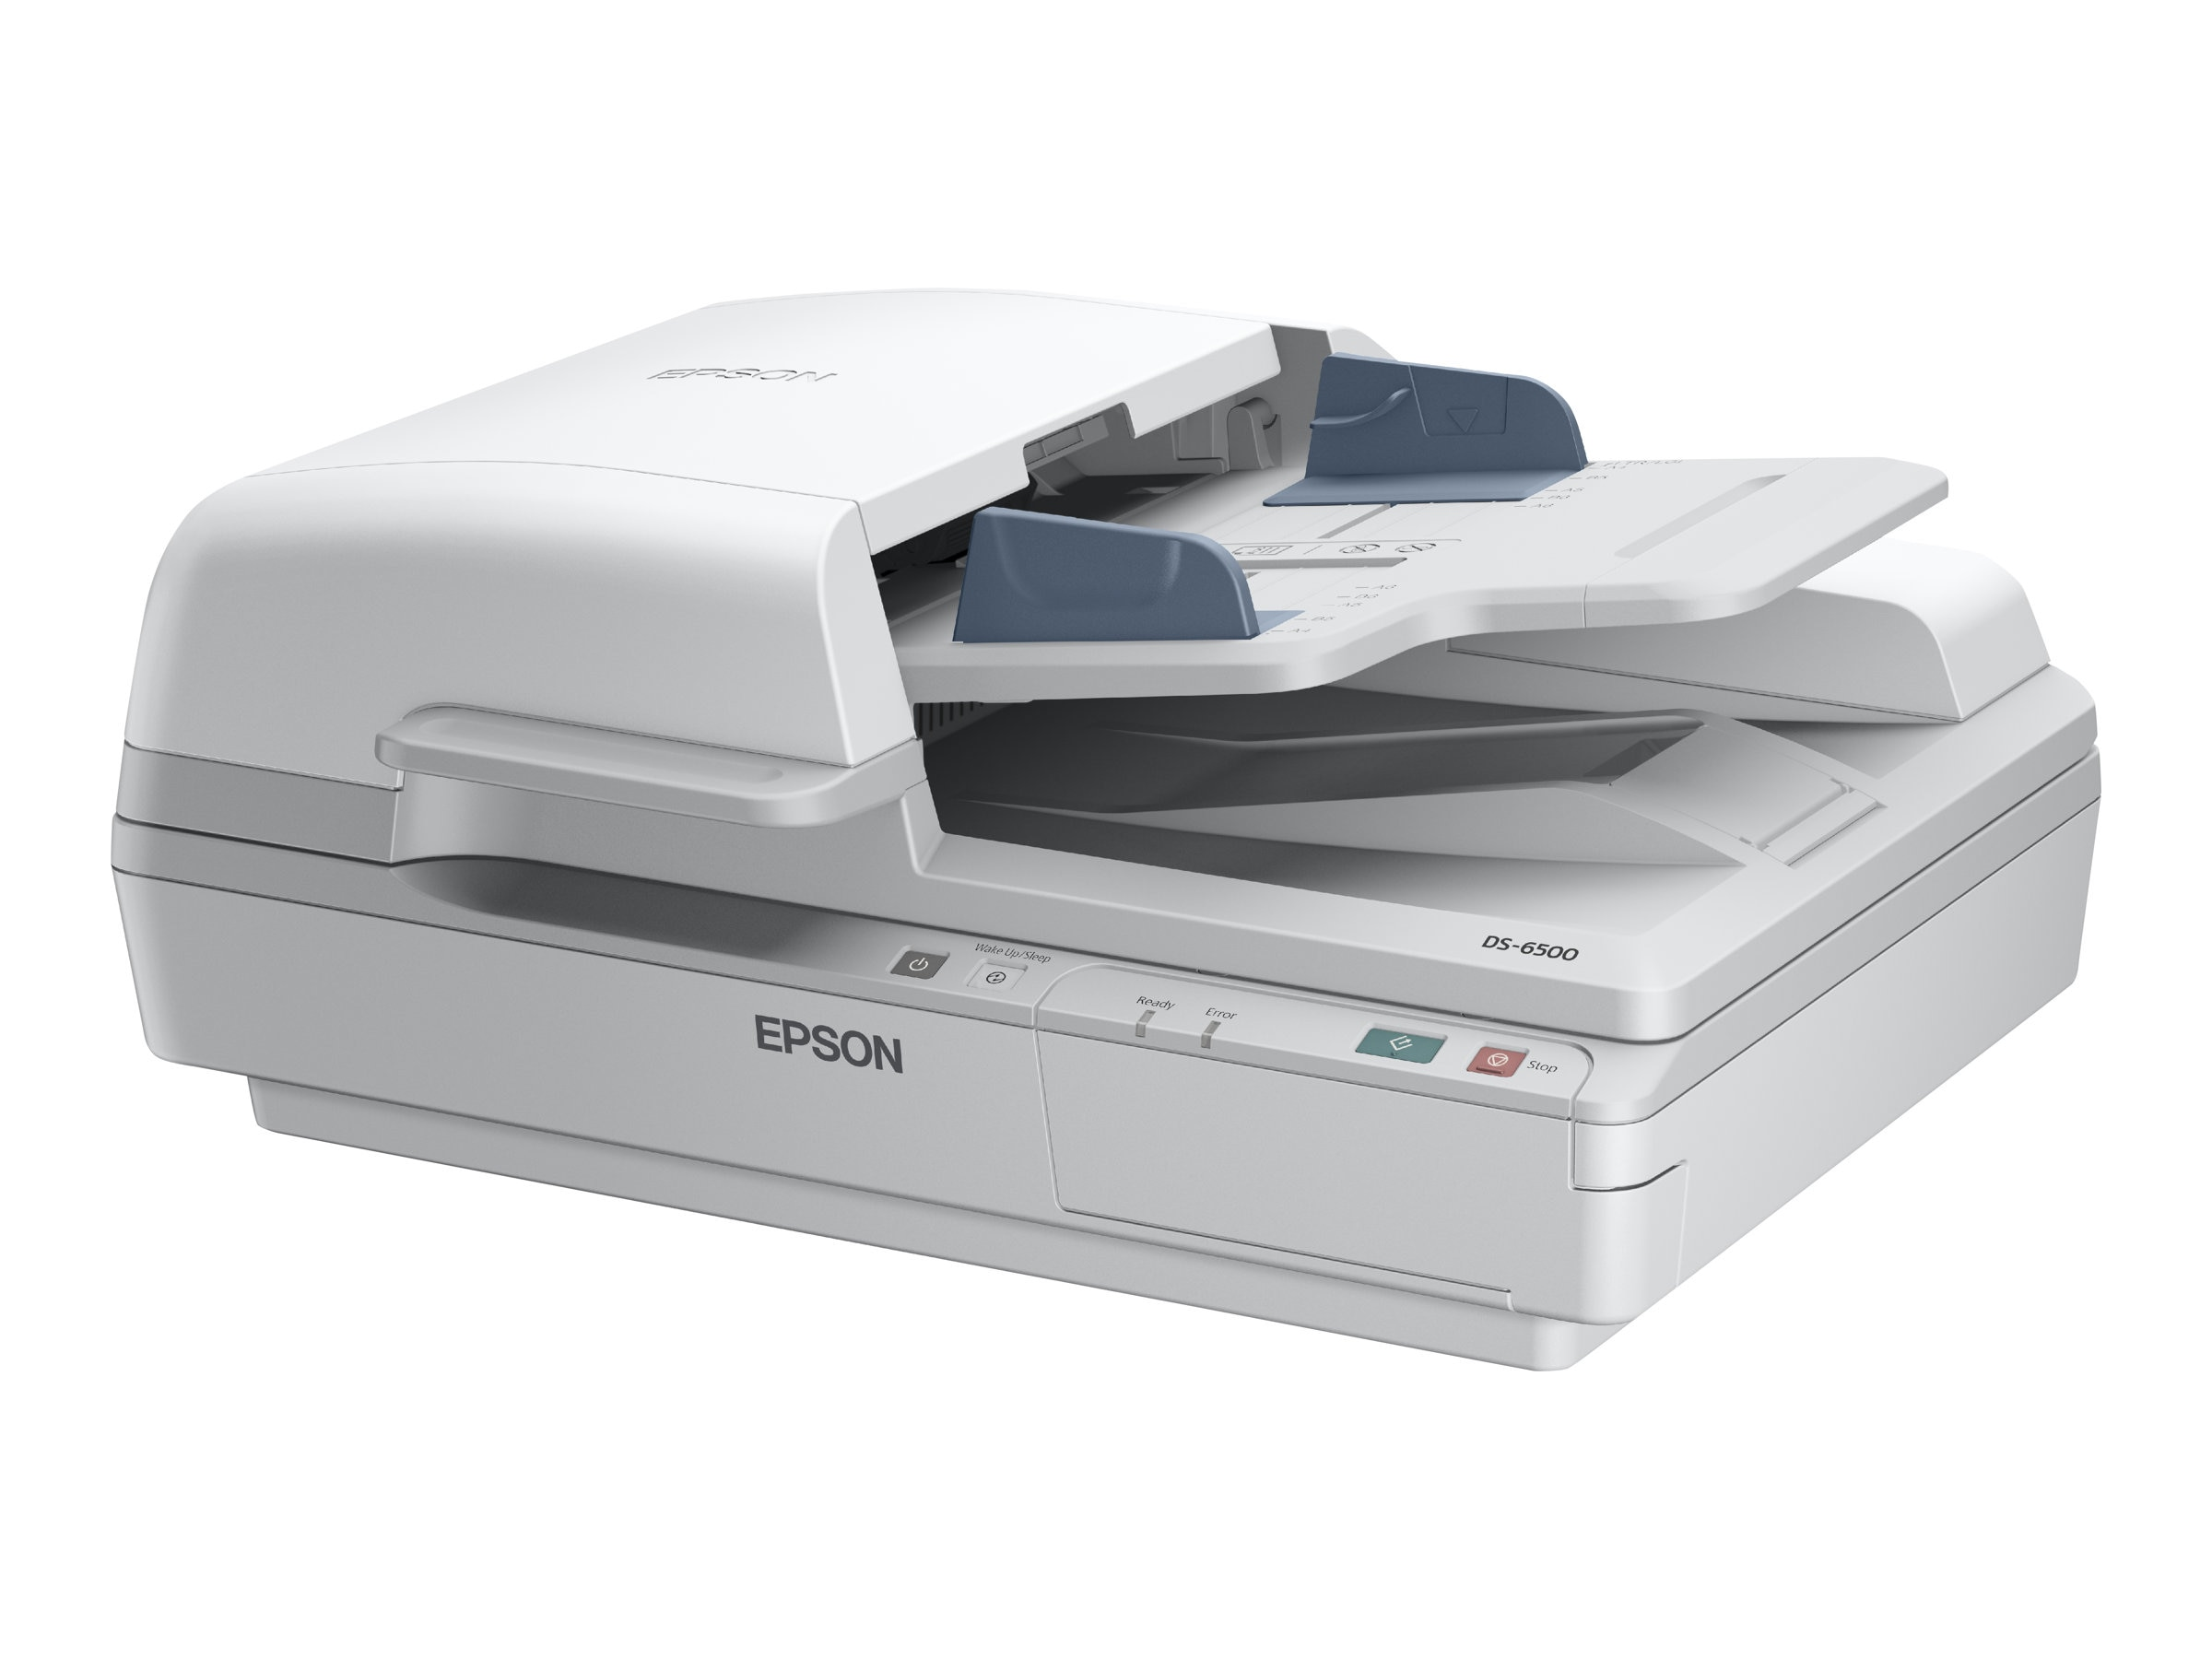 Epson WorkForce DS-7500 Scanner - $1199 less instant rebate of $40.00